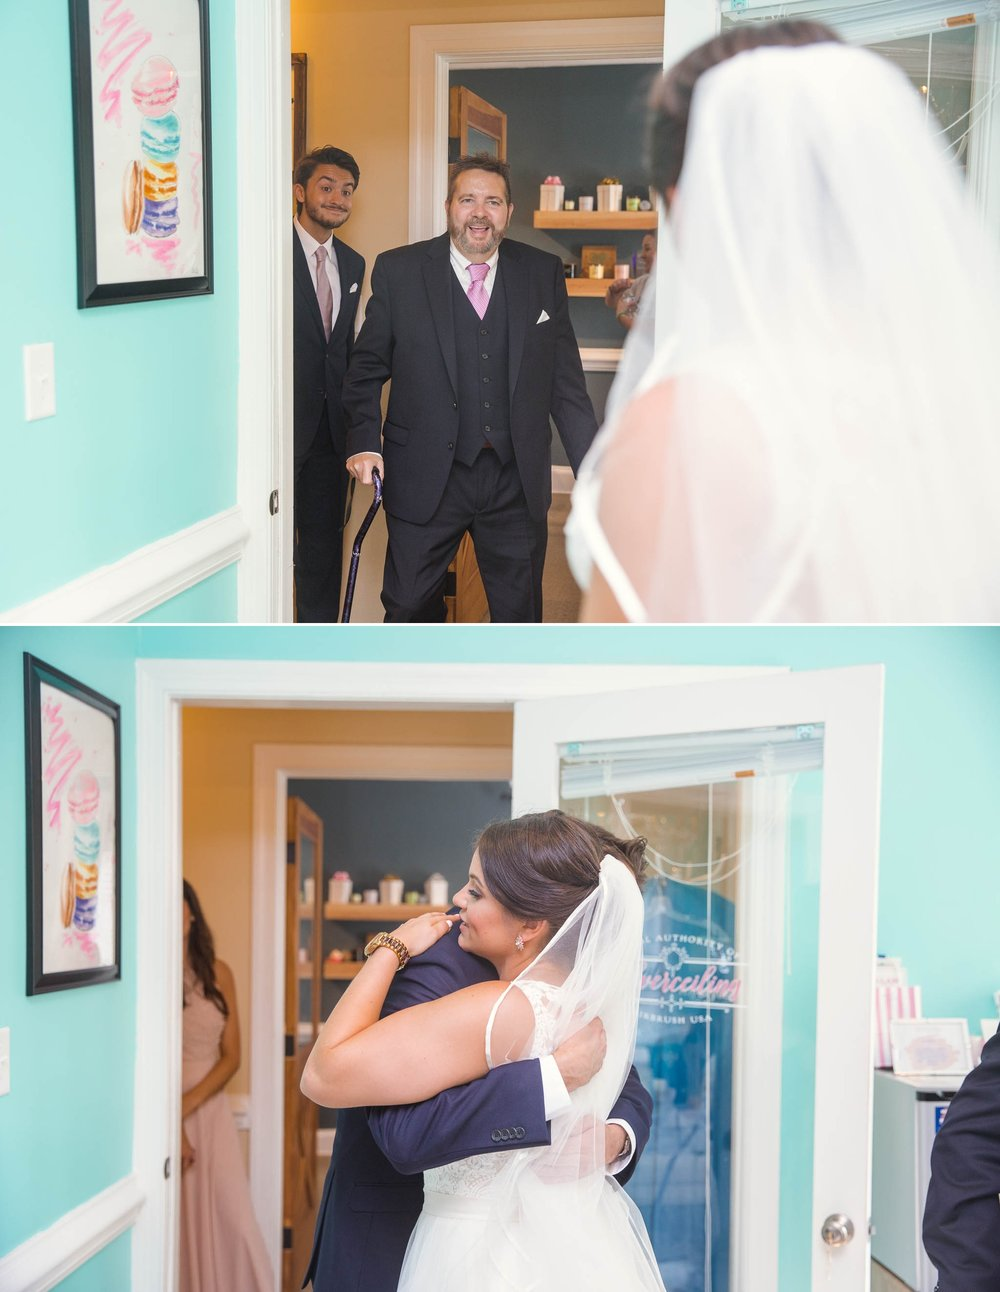 Brides first look with her dad - Clare + Wallace - The Jiddy Space - Raleigh North Carolina Wedding Photographer